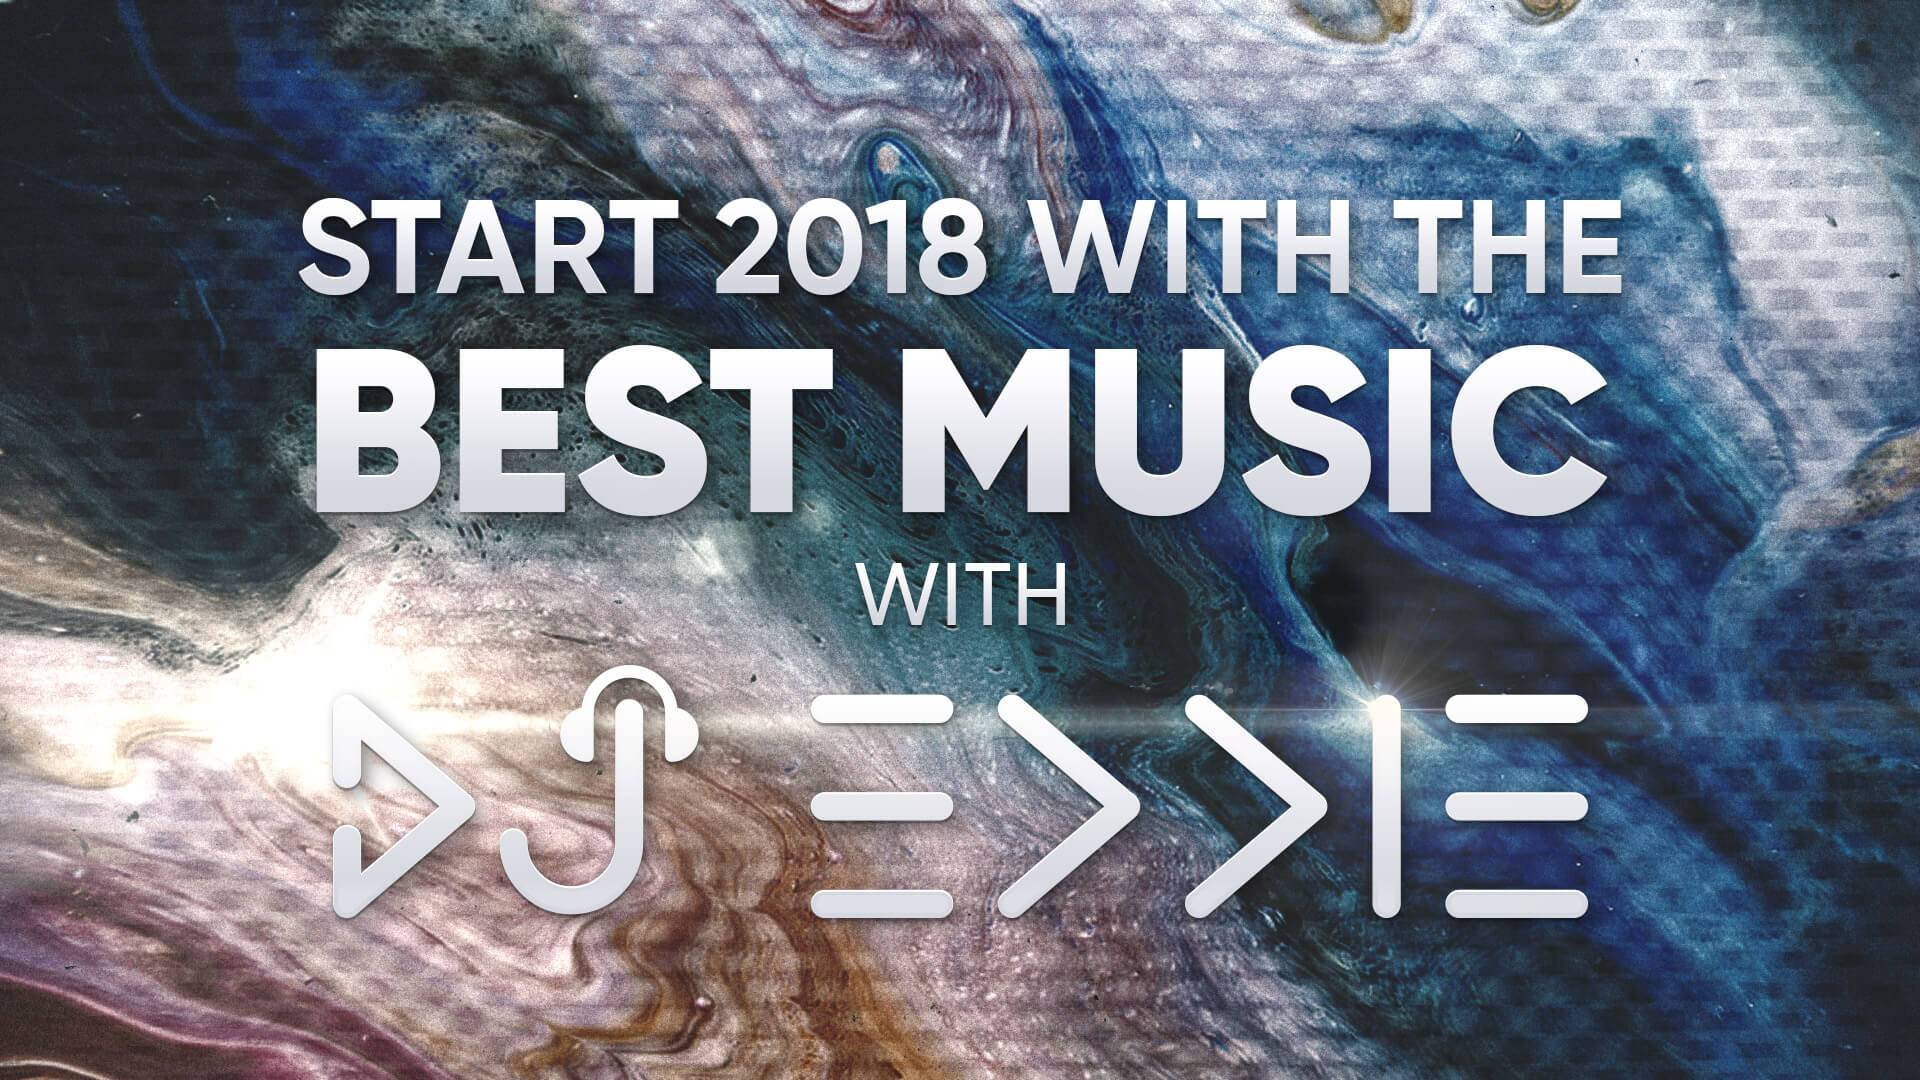 Start the first day of work in 2018 with Great Music - DJ Eddie